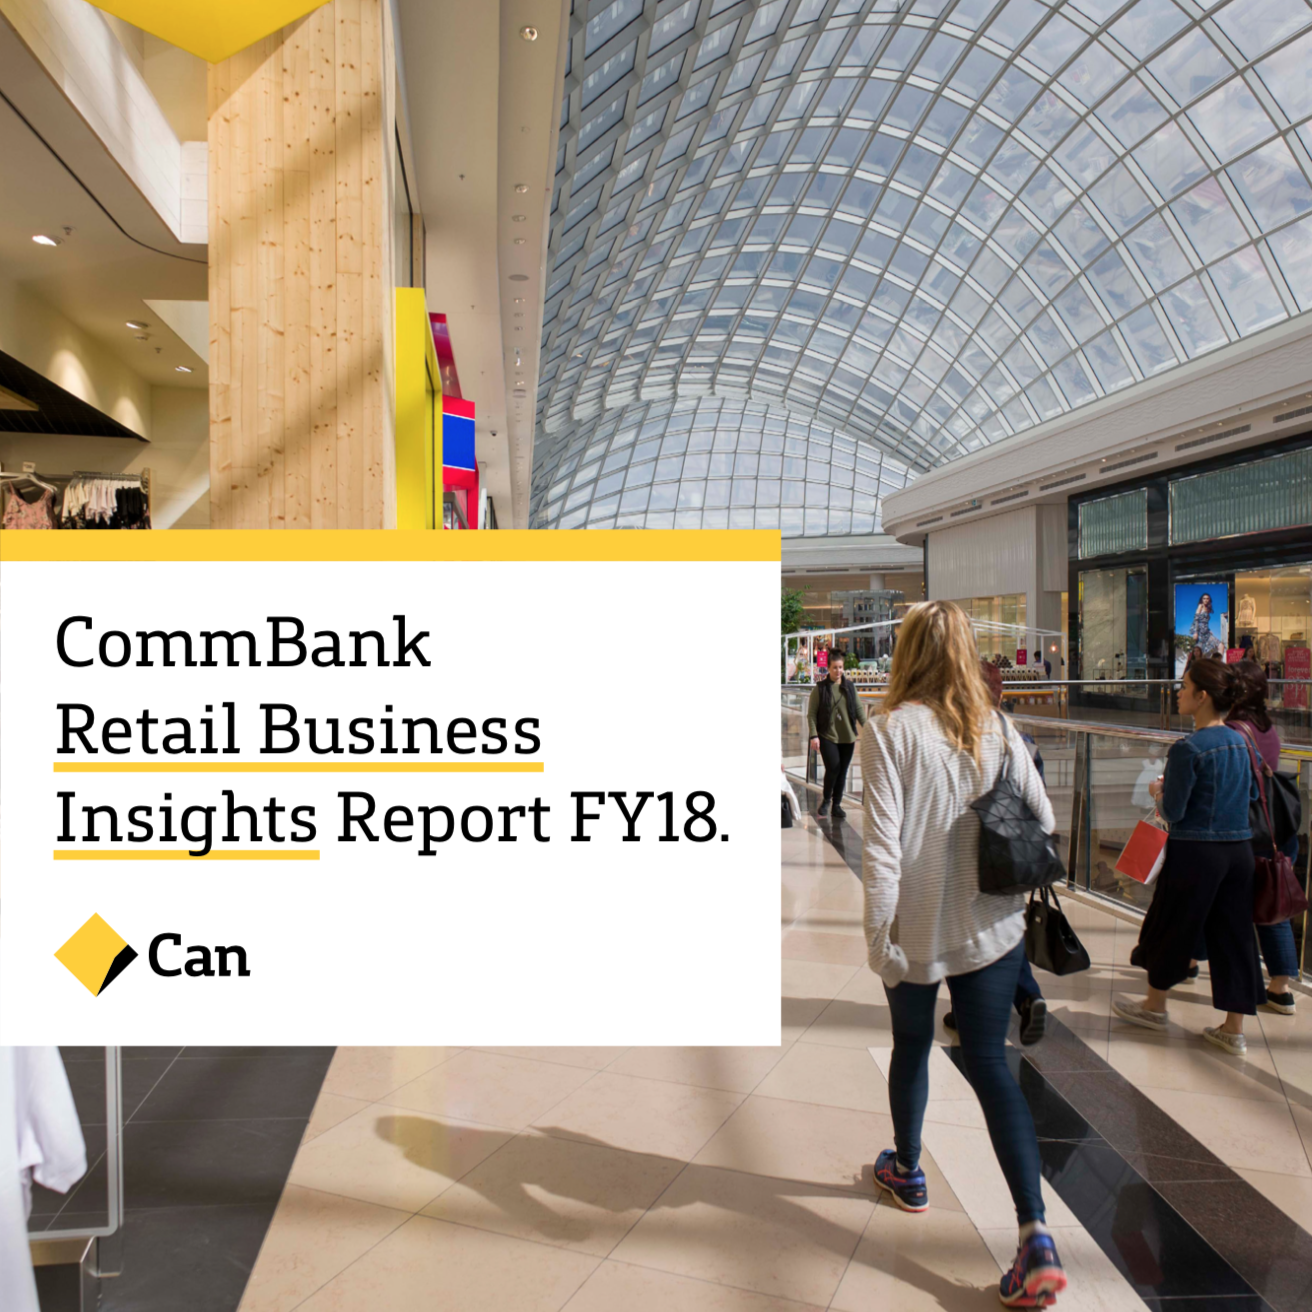 CommBank Retail Insights FY18